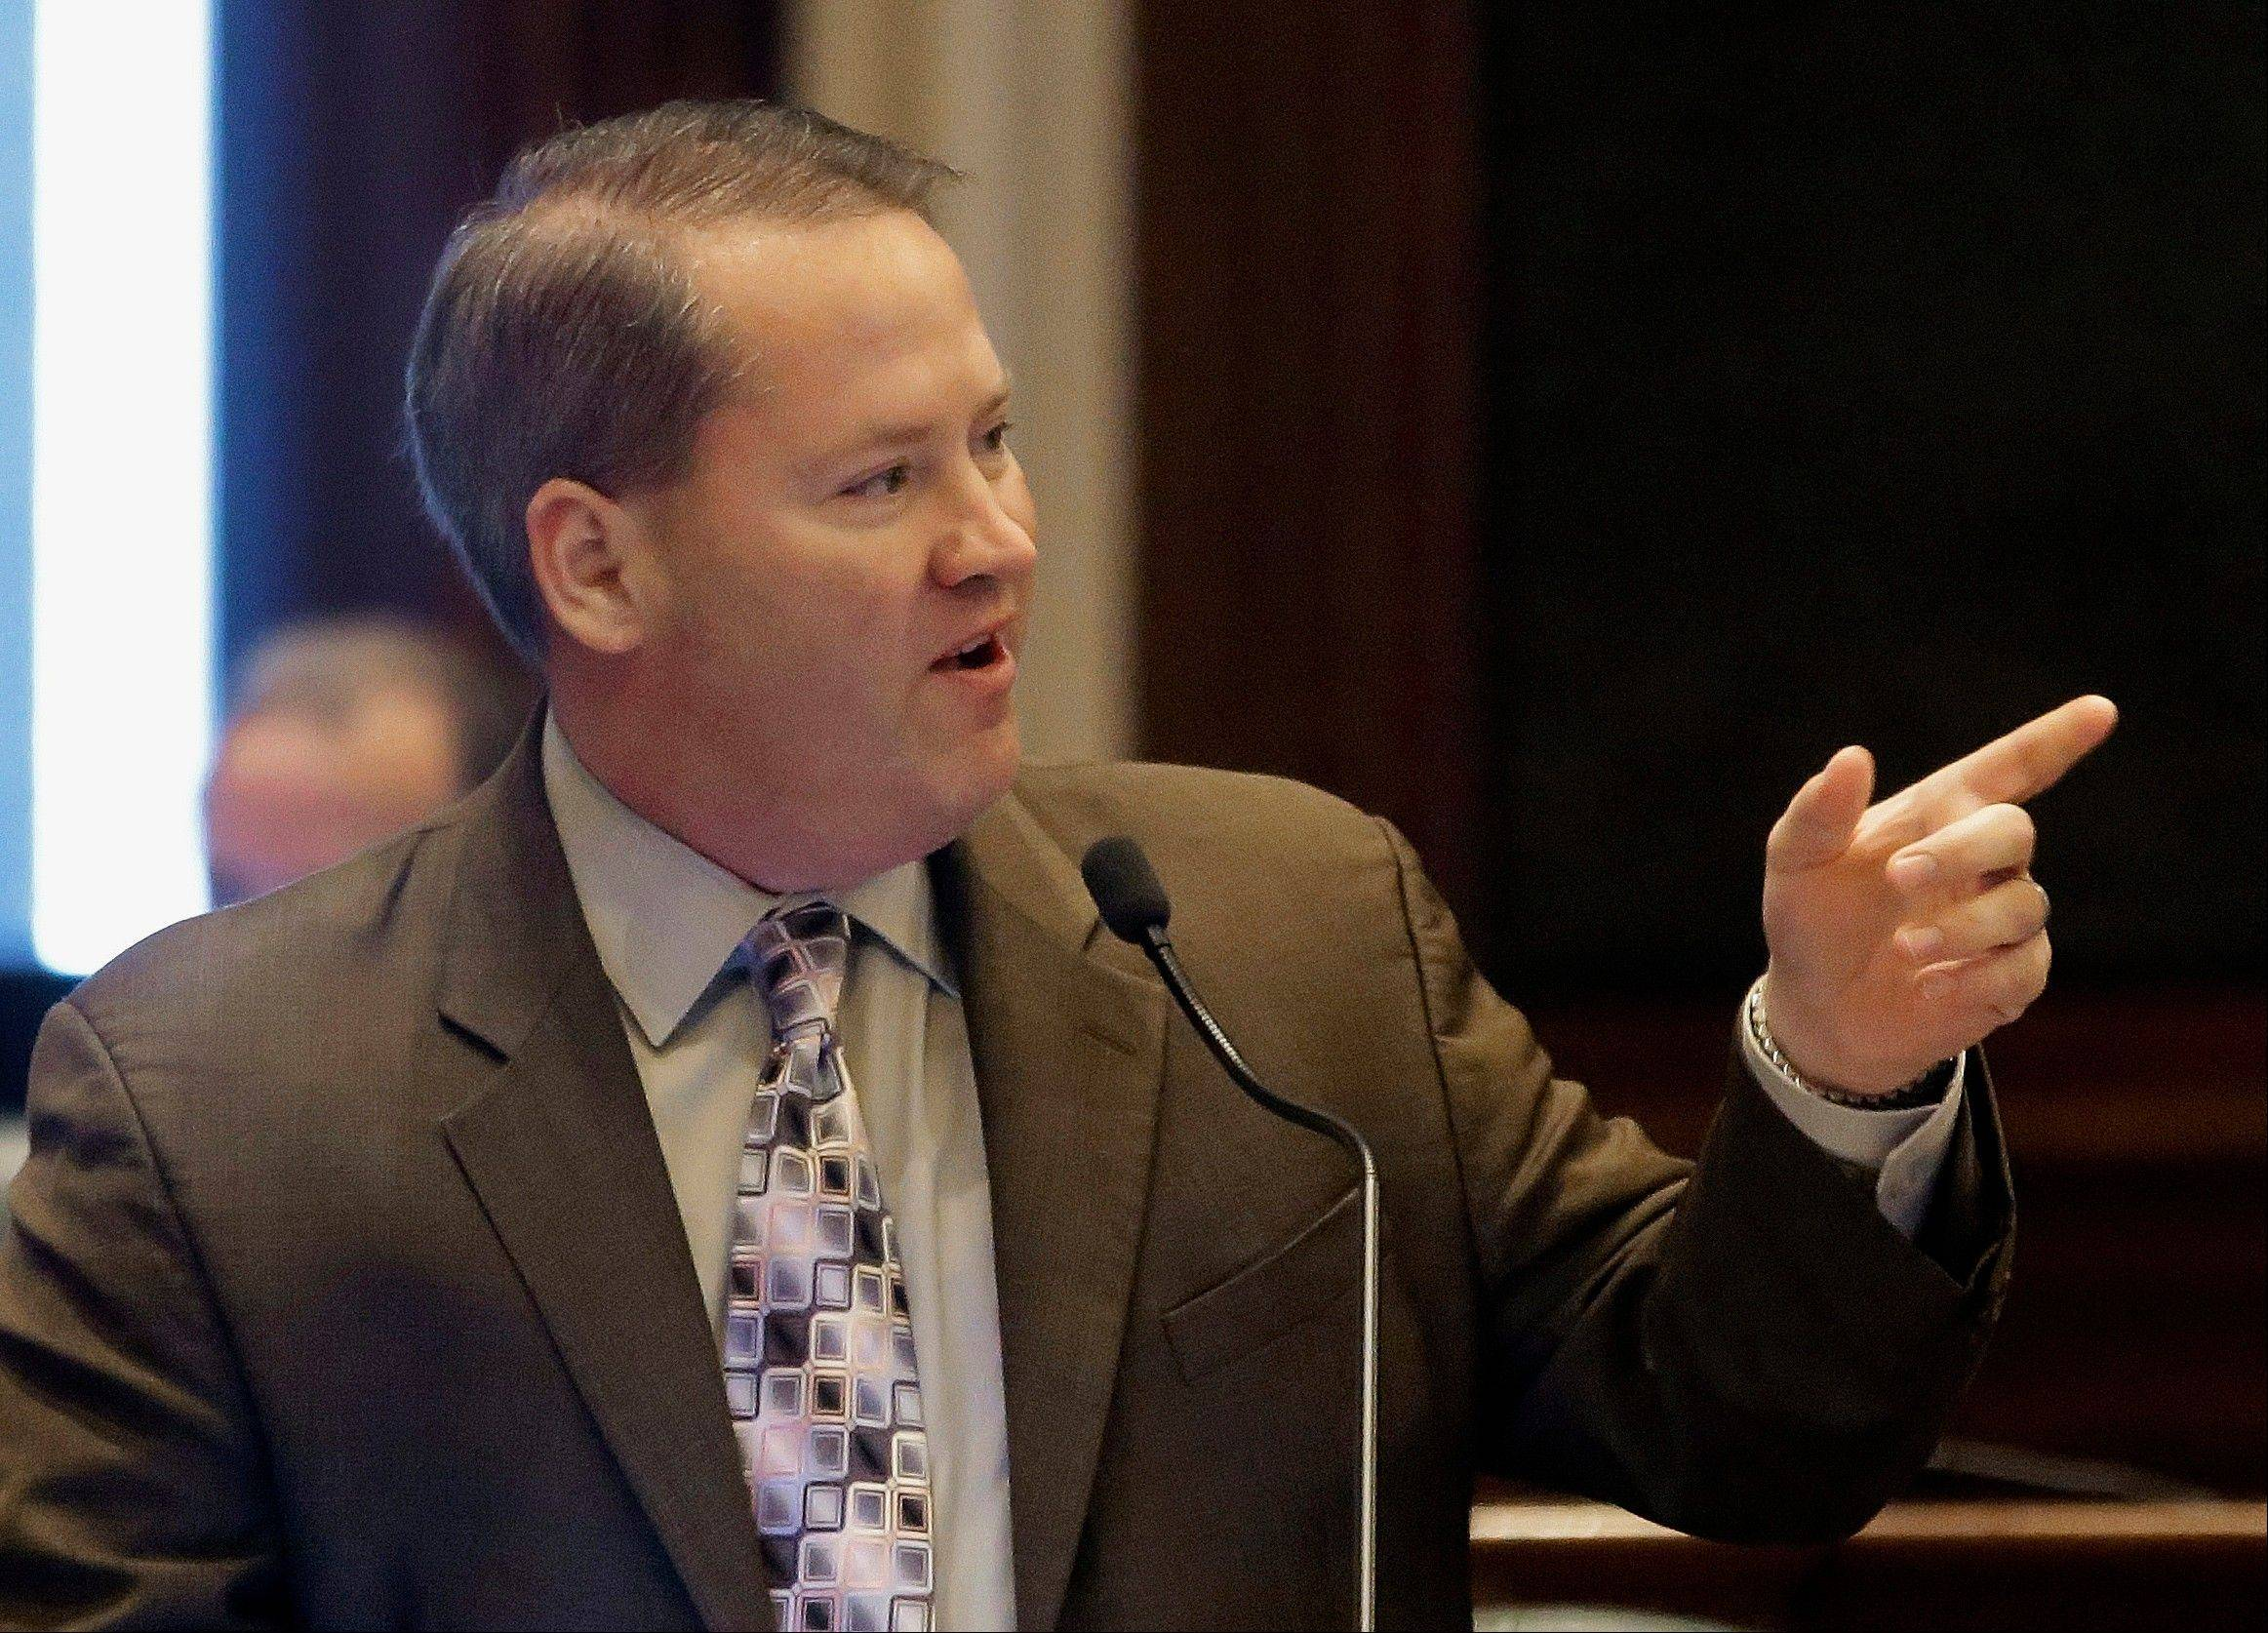 Illinois state Rep. Ed Sullivan, a Mundelein Republican whose support for same-sex marriage drew the ire of some conservatives, makes a point on the House floor during a session at the state Capitol last May.